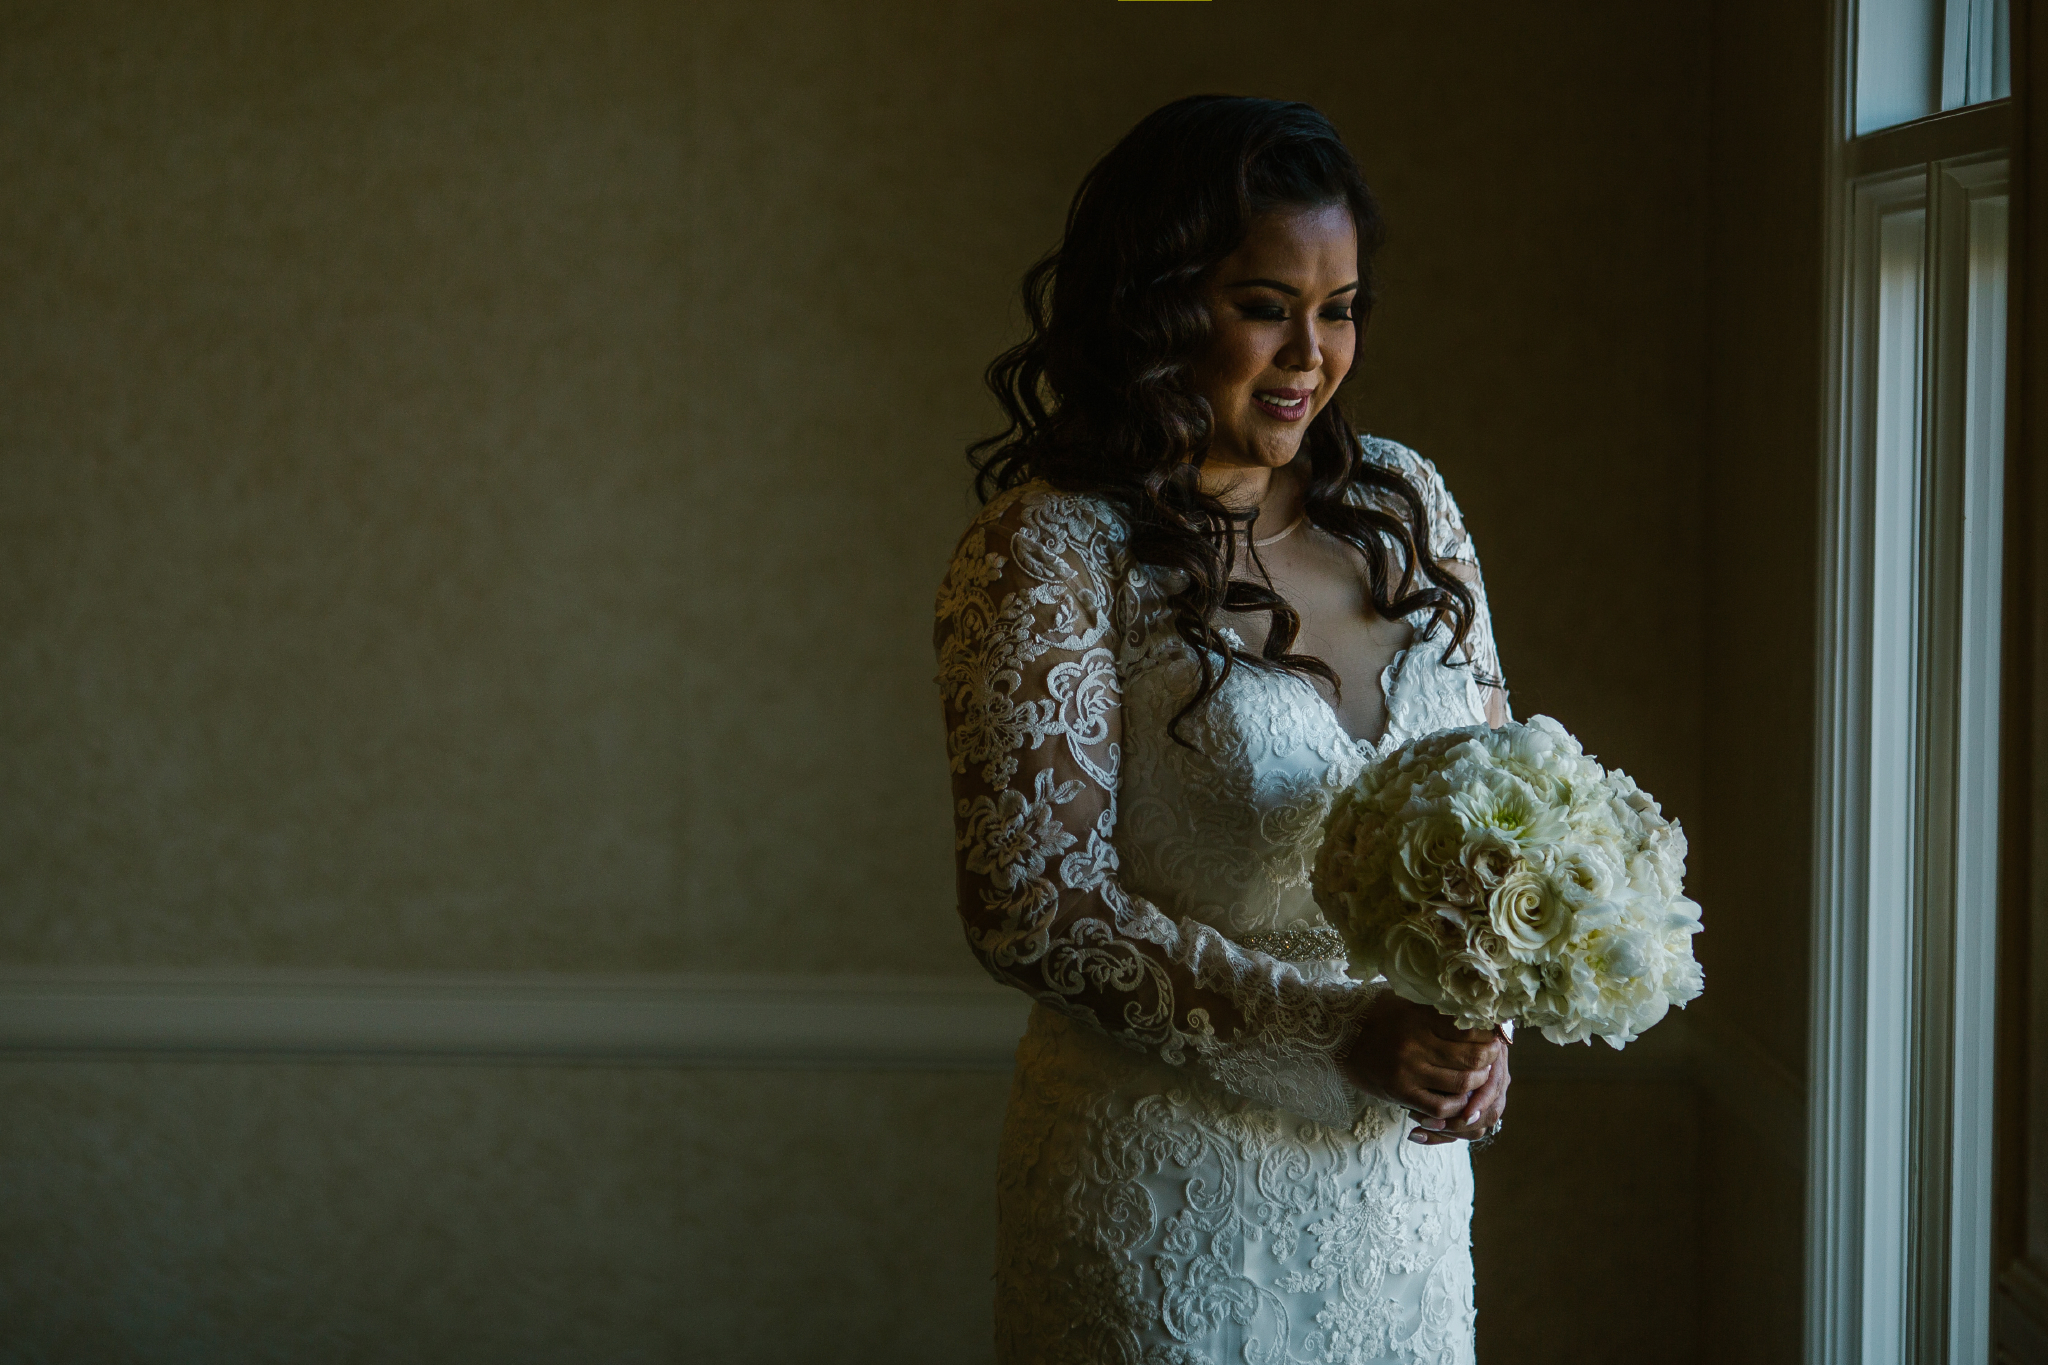 san diego wedding   photographer | woman holding bouquet of flowers